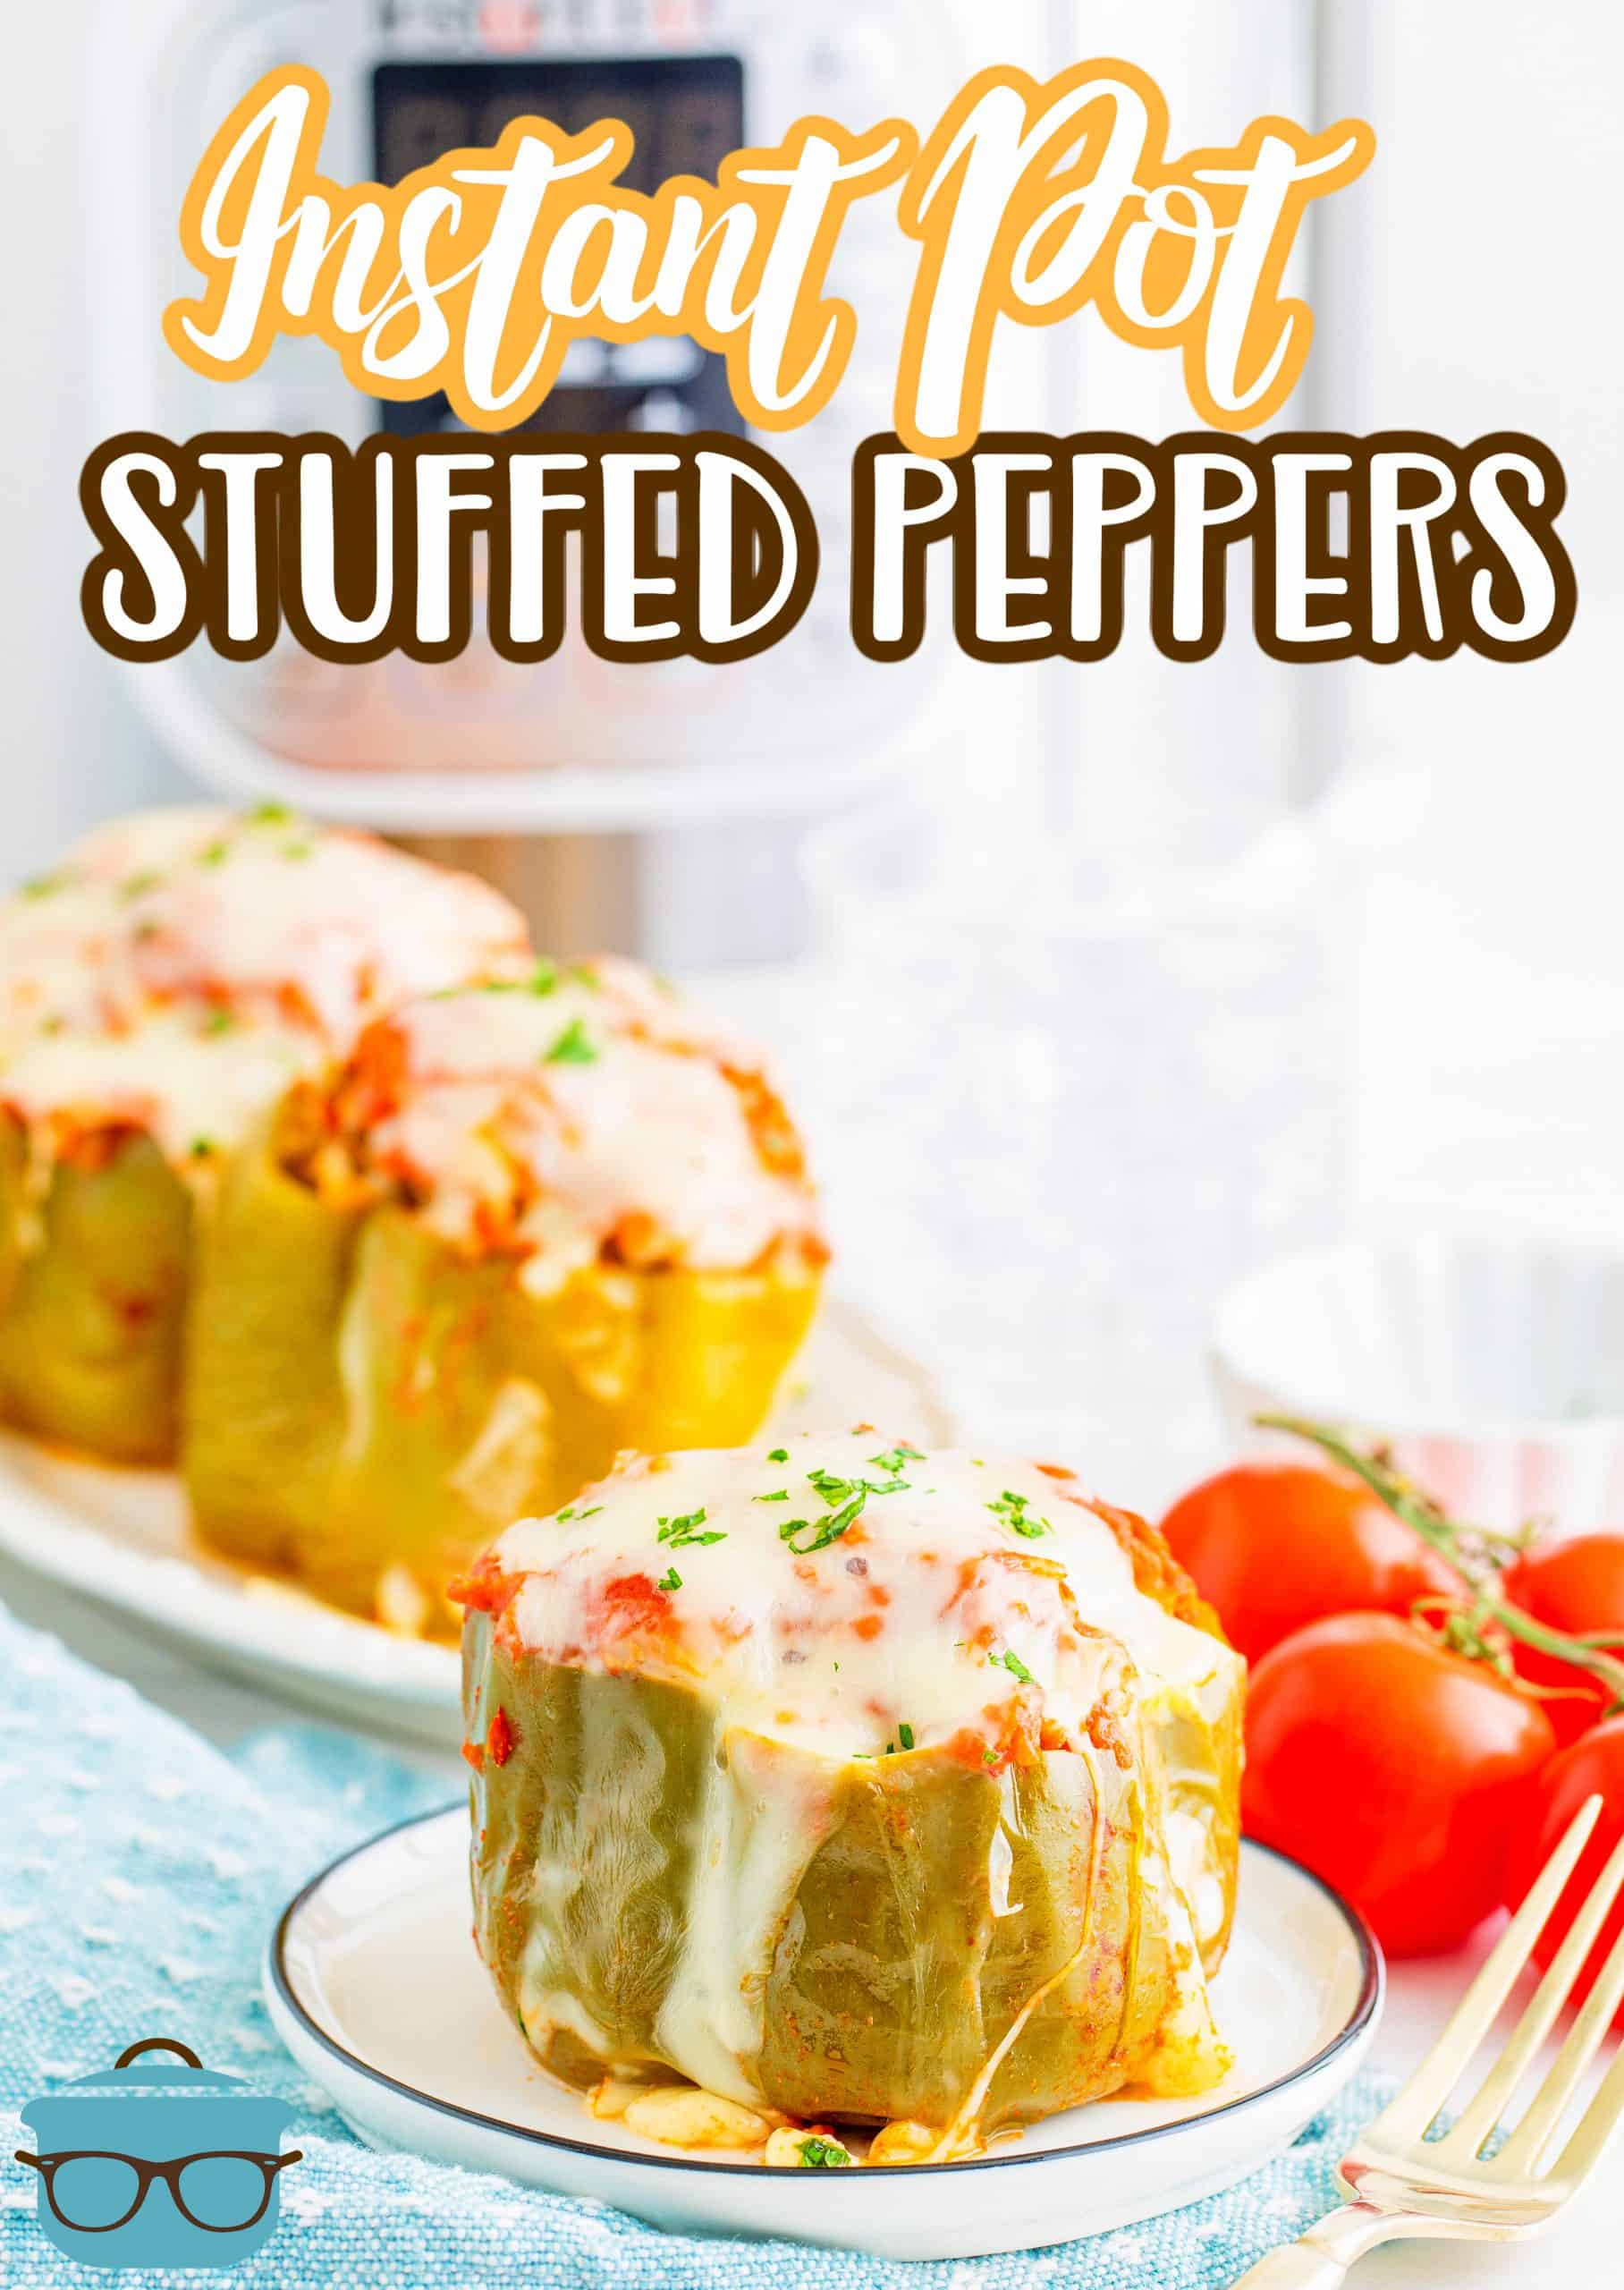 This Instant Pot Stuffed Peppers recipe is made with ground beef, rice, mozzarella cheese, Italian seasoning, onions and tomato sauce. You don't even need to pre-cook the beef and rice beforehand!